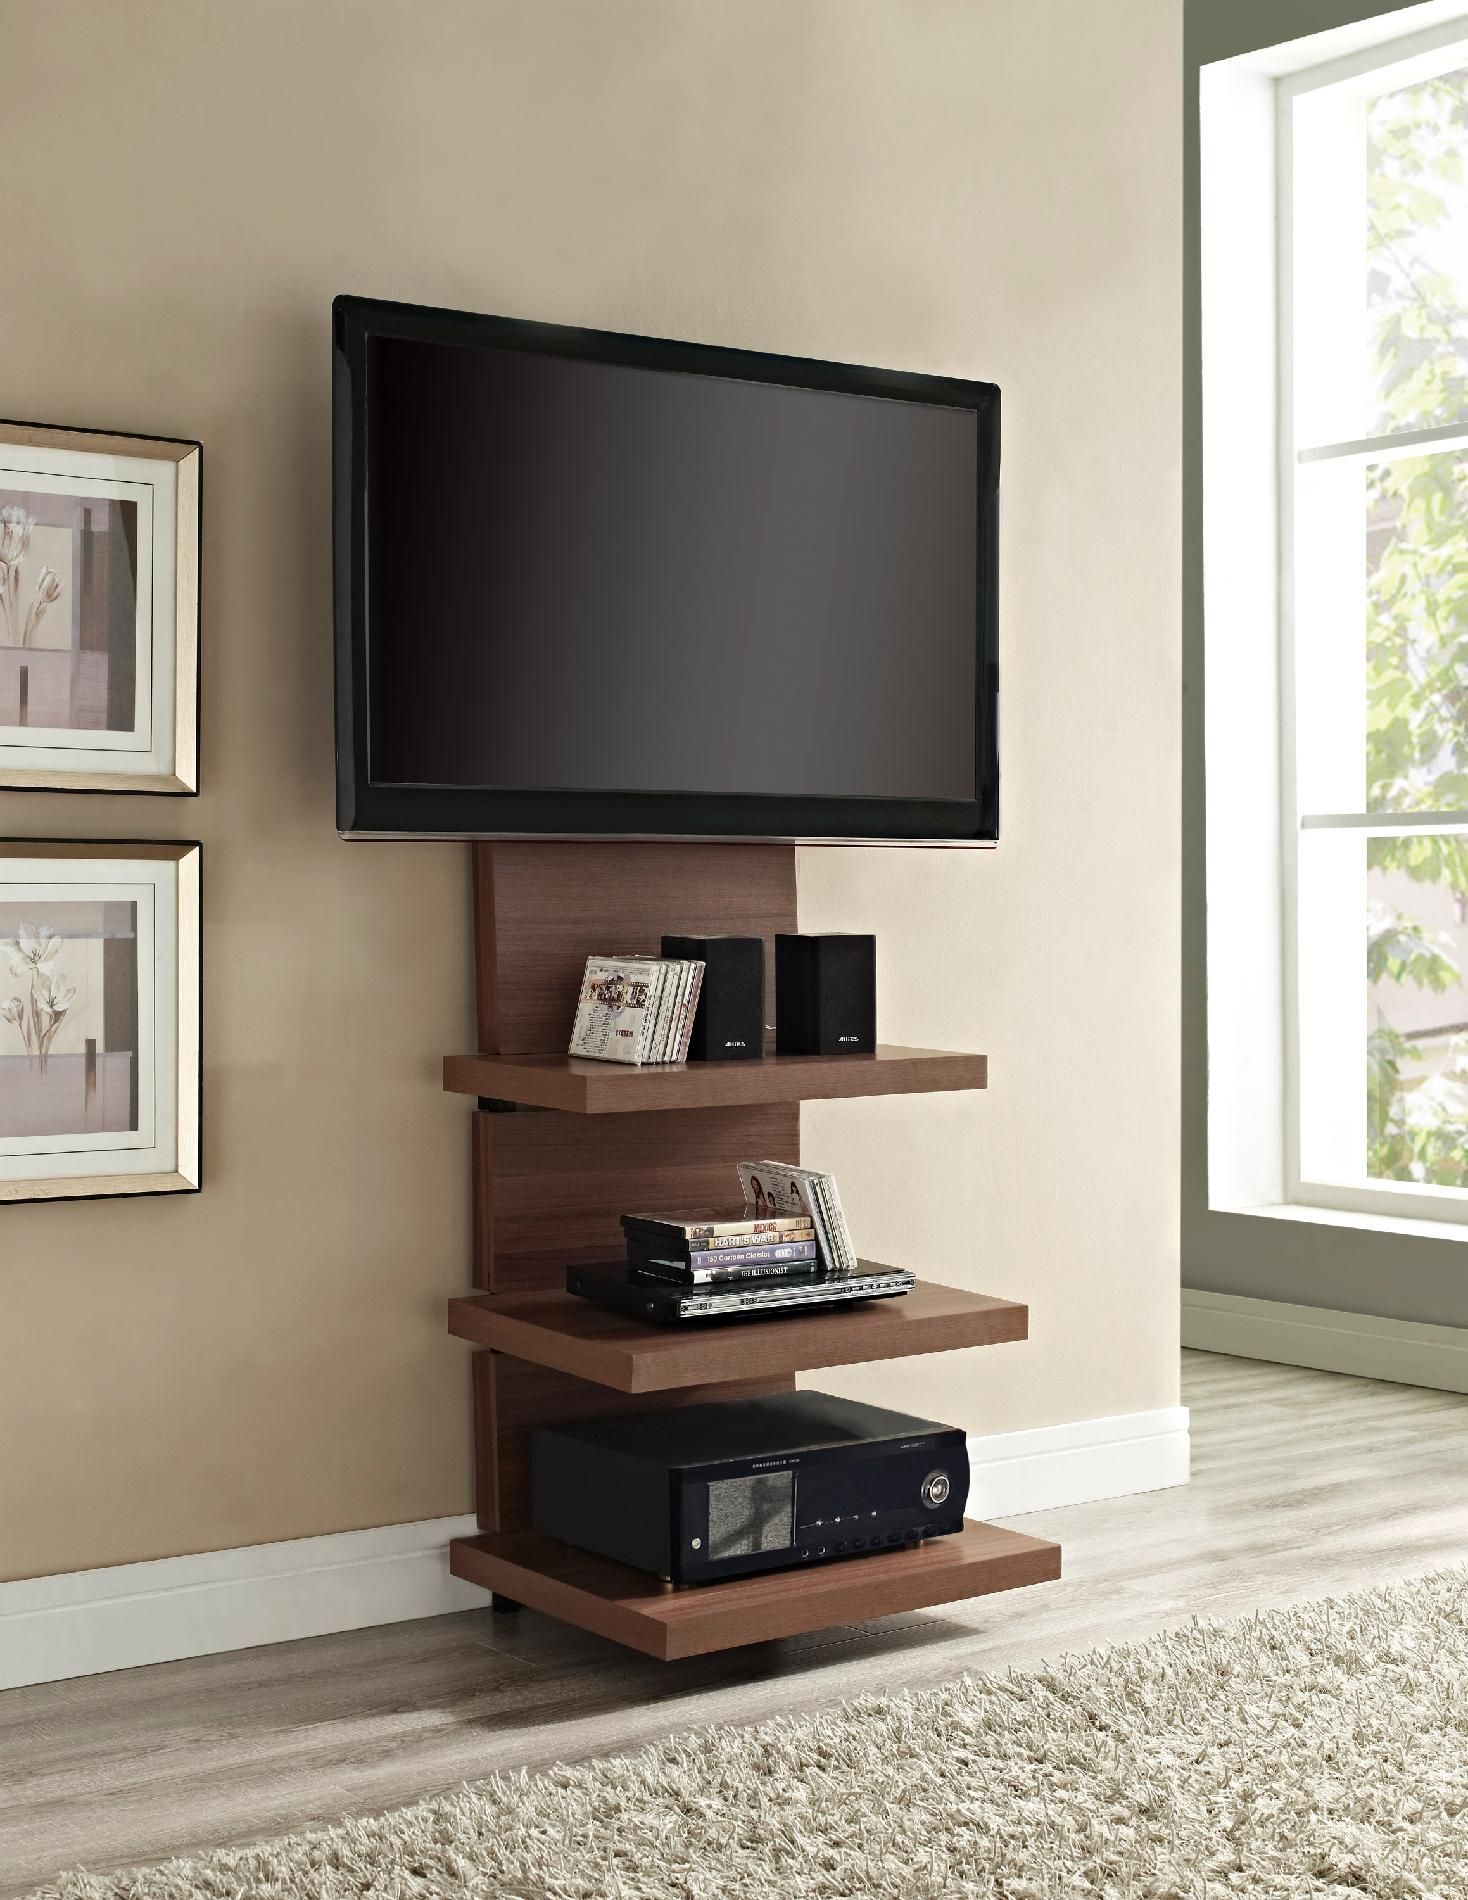 medium resolution of 18 chic and modern tv wall mount ideas for living room dream home rh pinterest com home entertainment wiring home entertainment wiring ideas